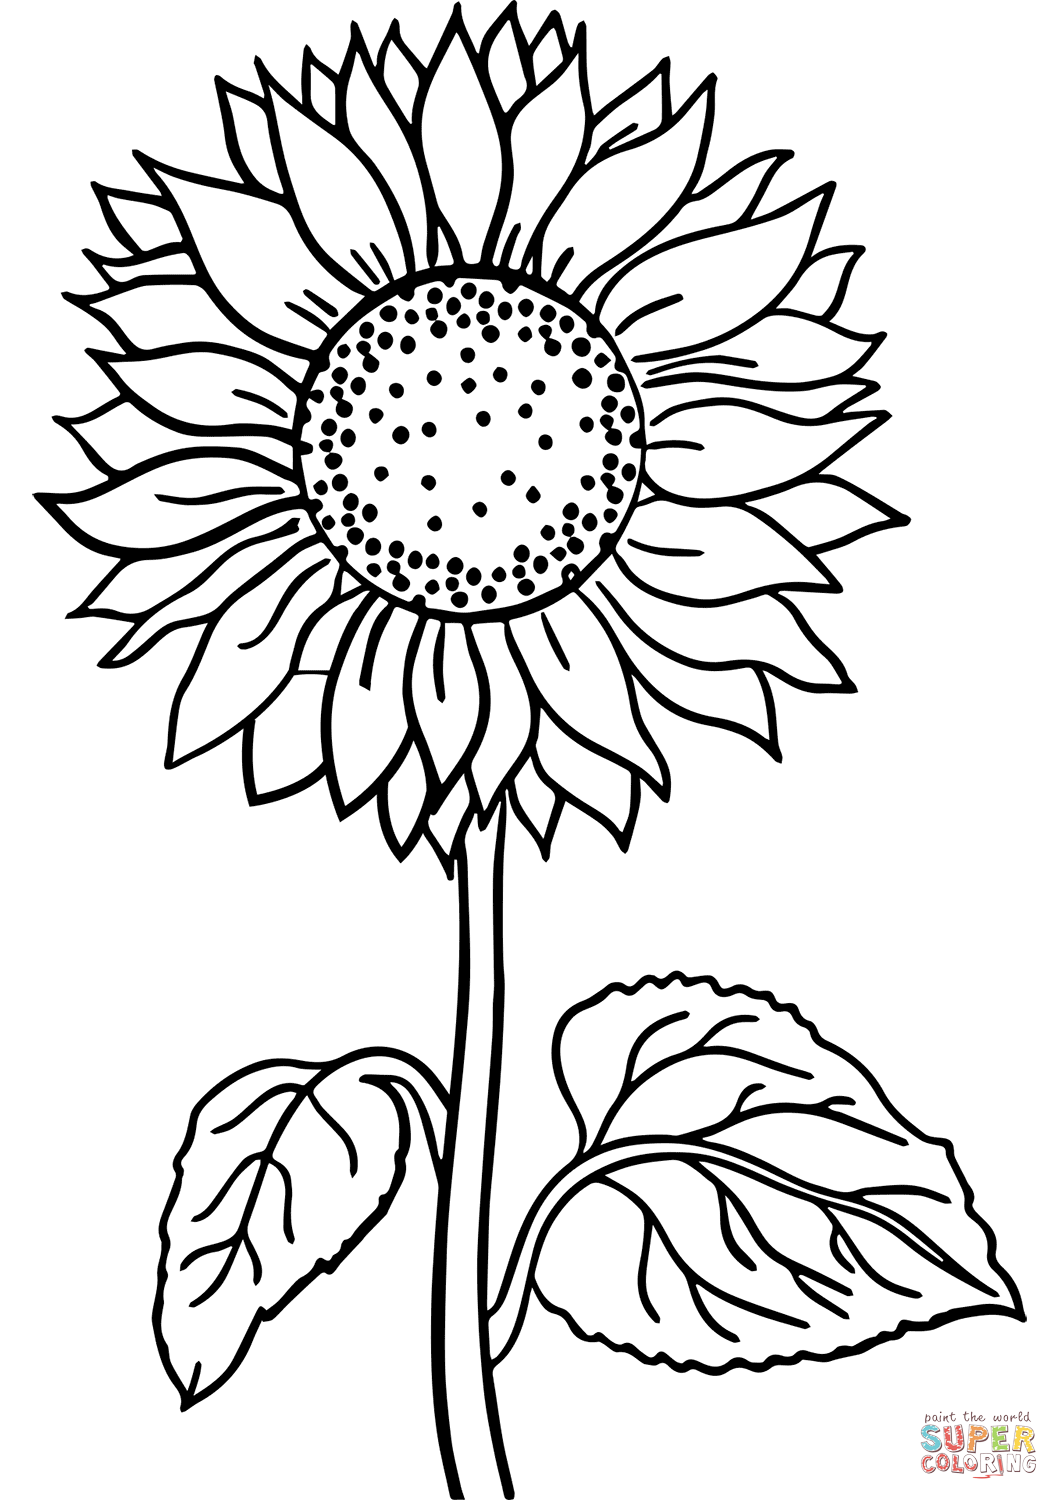 Sunflower Super Coloring Sunflower Coloring Pages Printable Flower Coloring Pages Sunflower Drawing